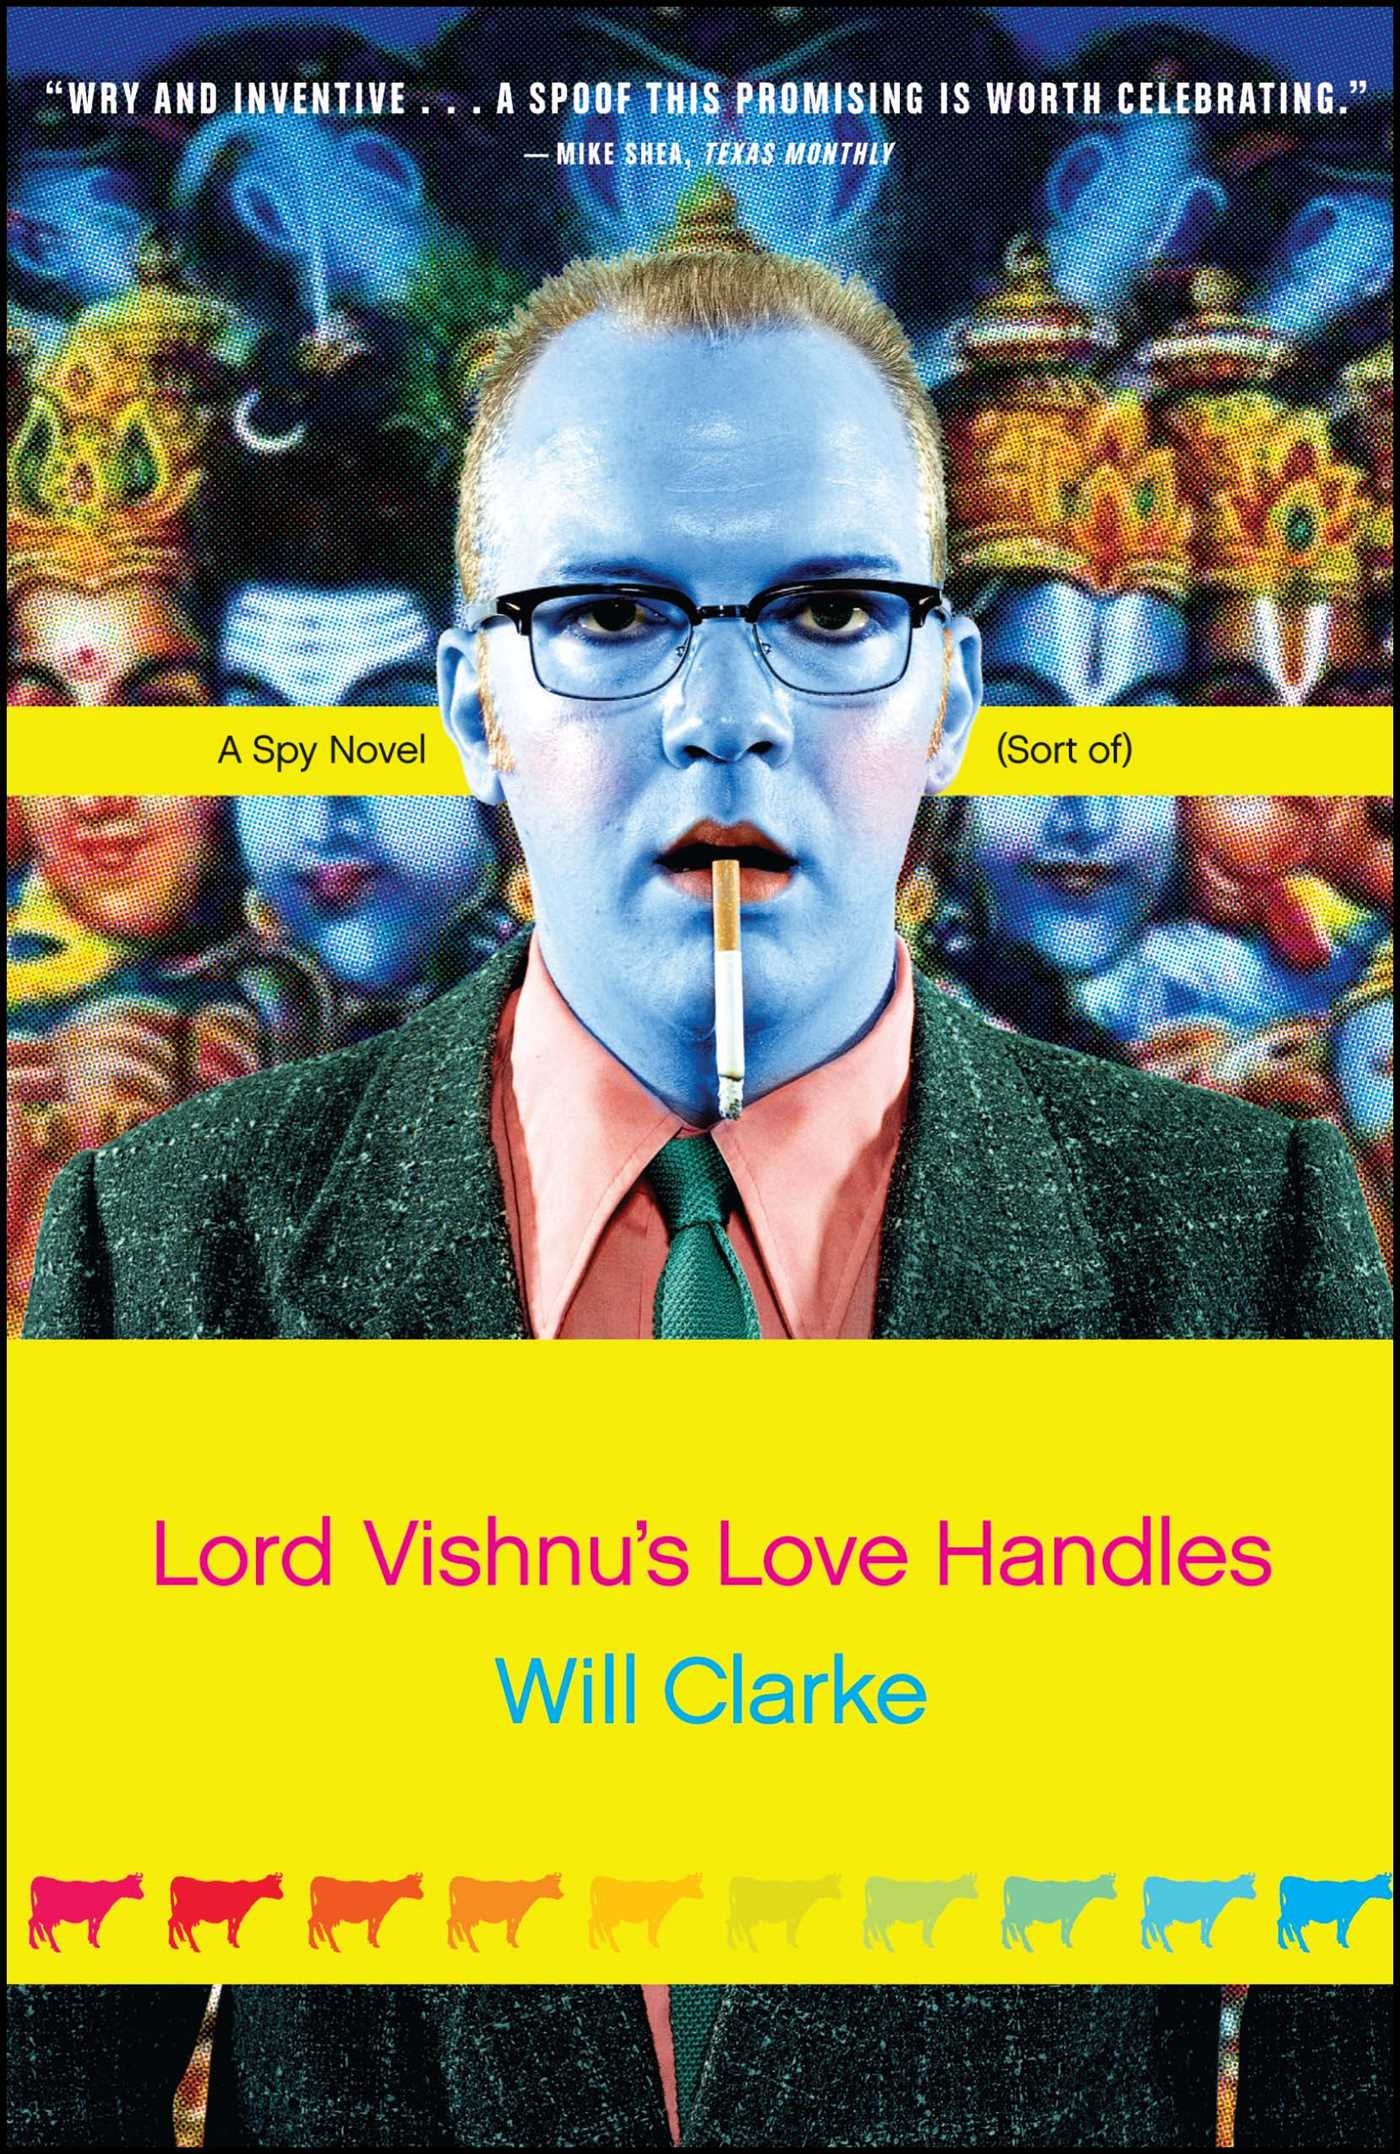 Lord vishnus love handles 9780743271486 hr